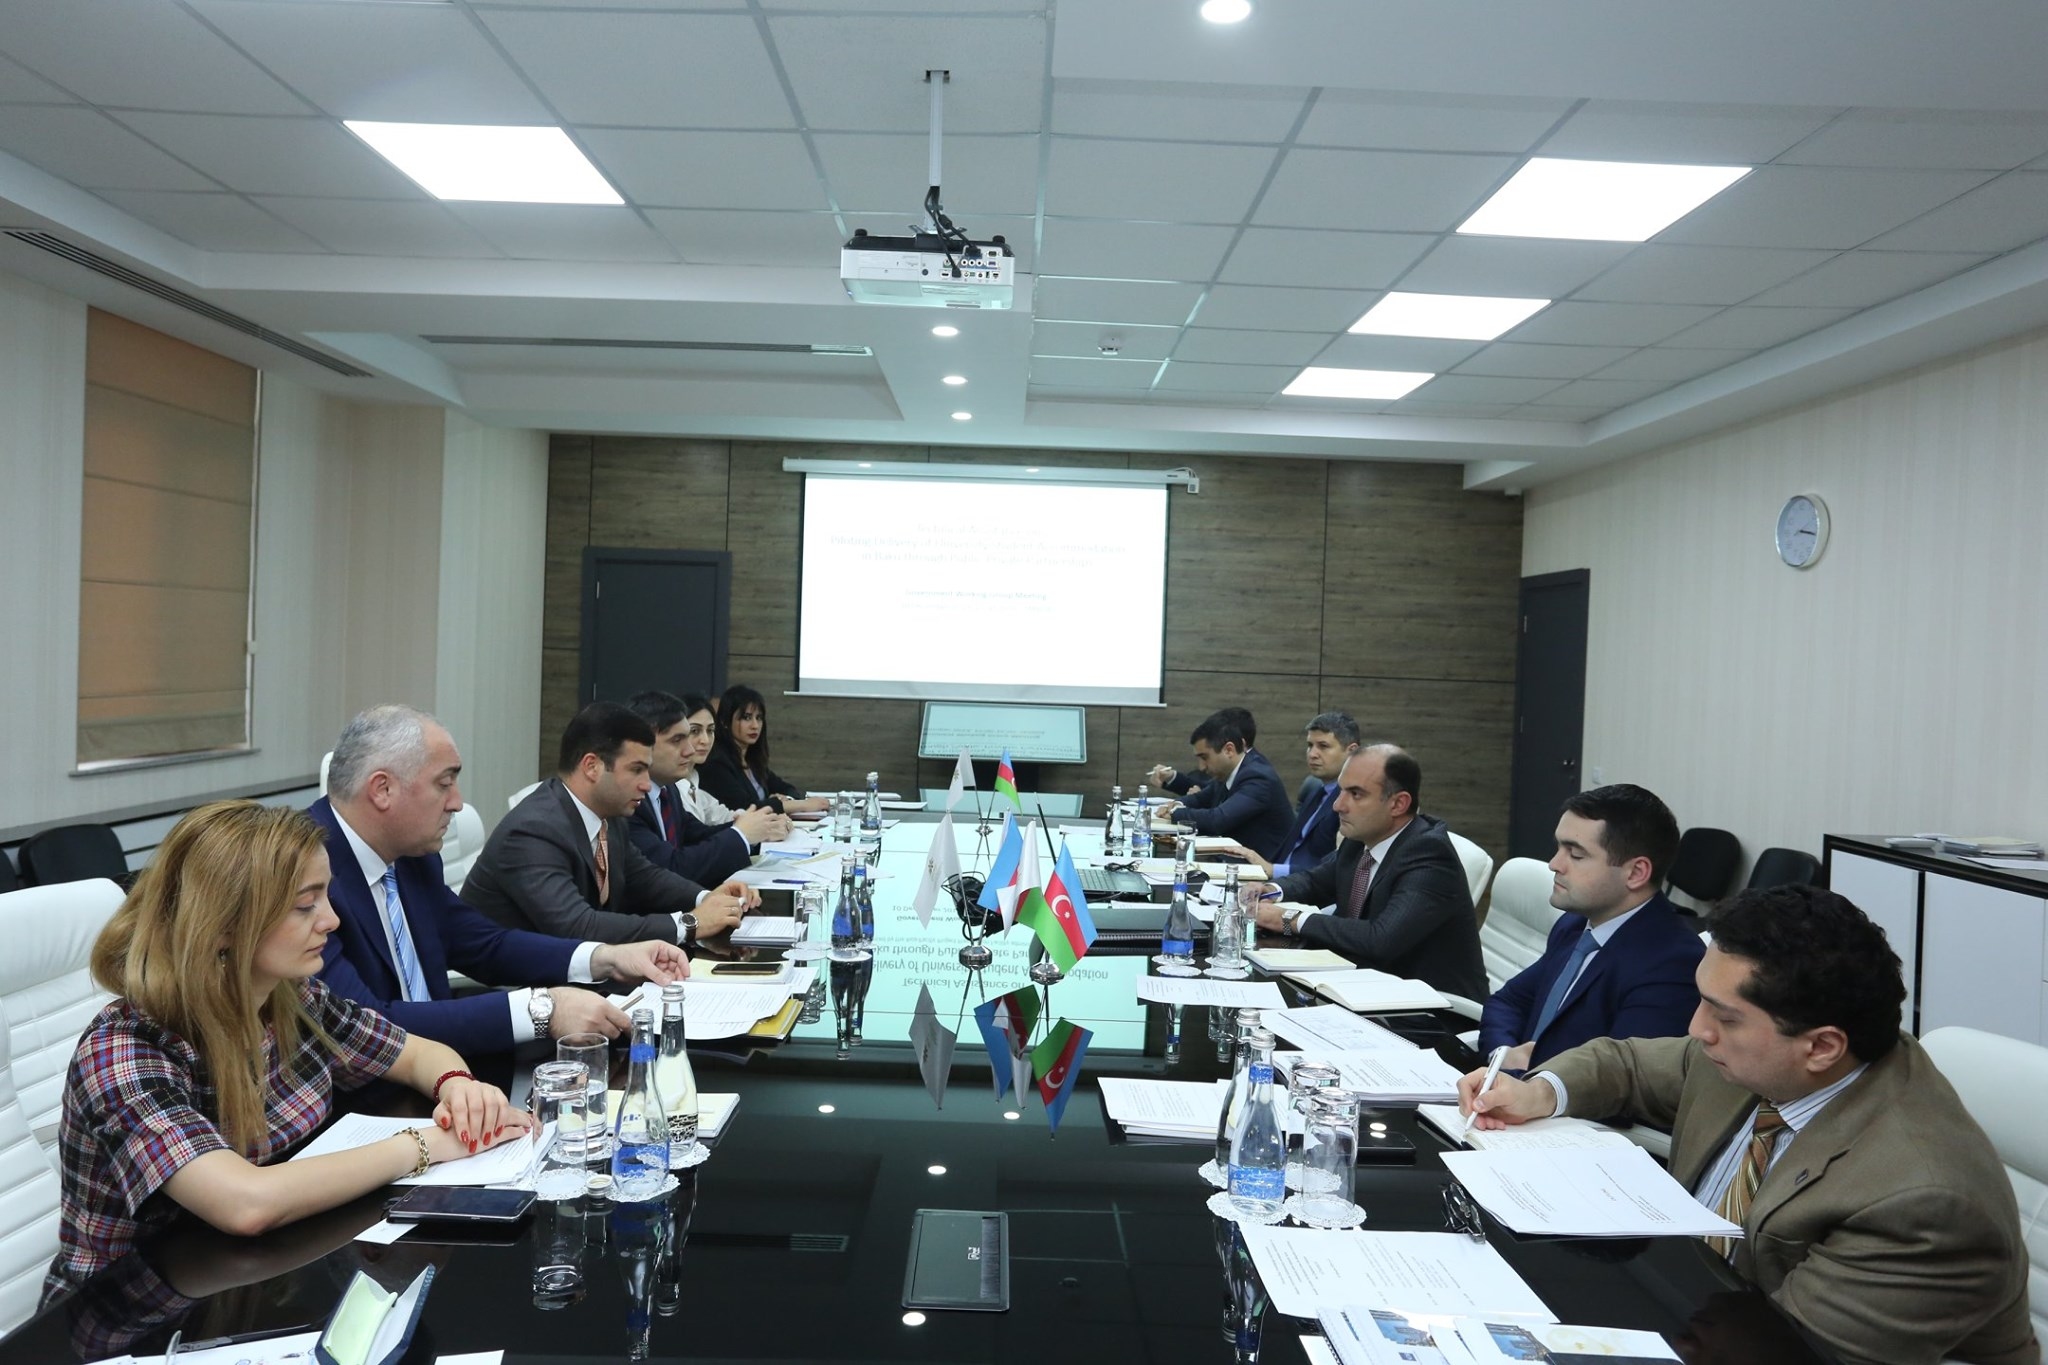 Meeting of the Working Group established within the framework of the Public-Private Partnership was held